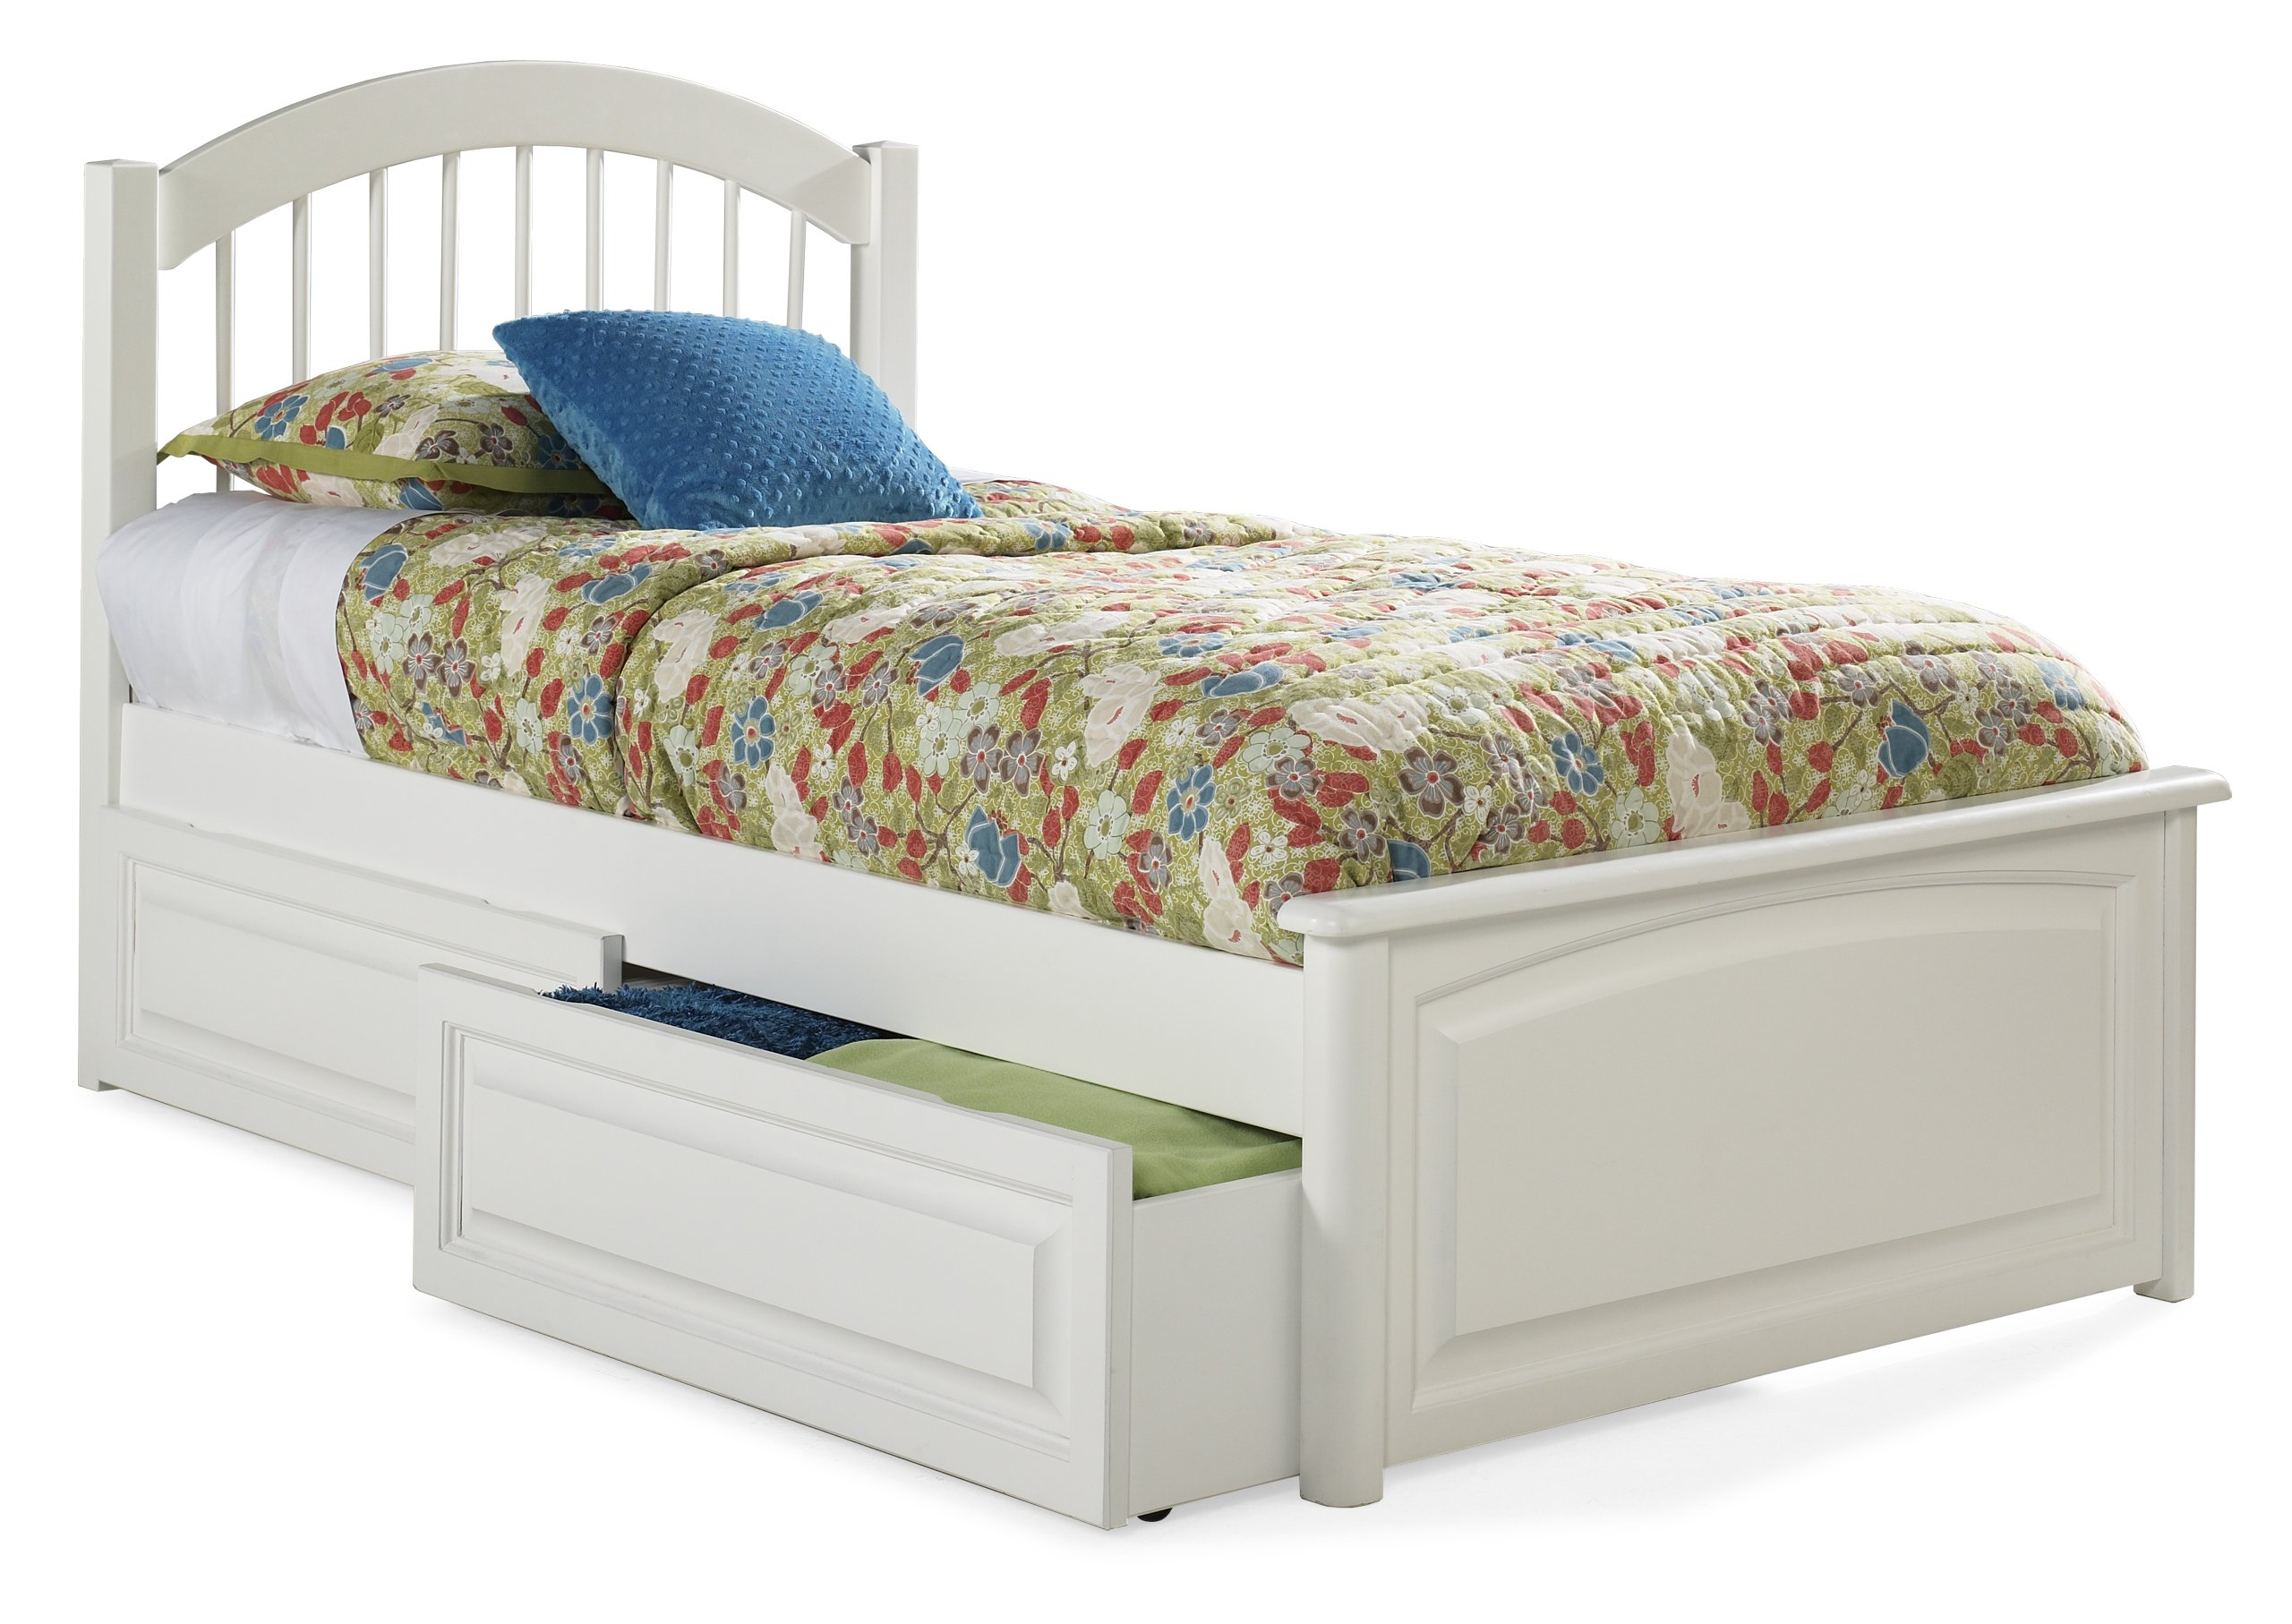 Twin platform bed with drawers - Windsor Twin Platform Bed With Raised Panel Footboard White With 2 Raised Panel Bed Drawers